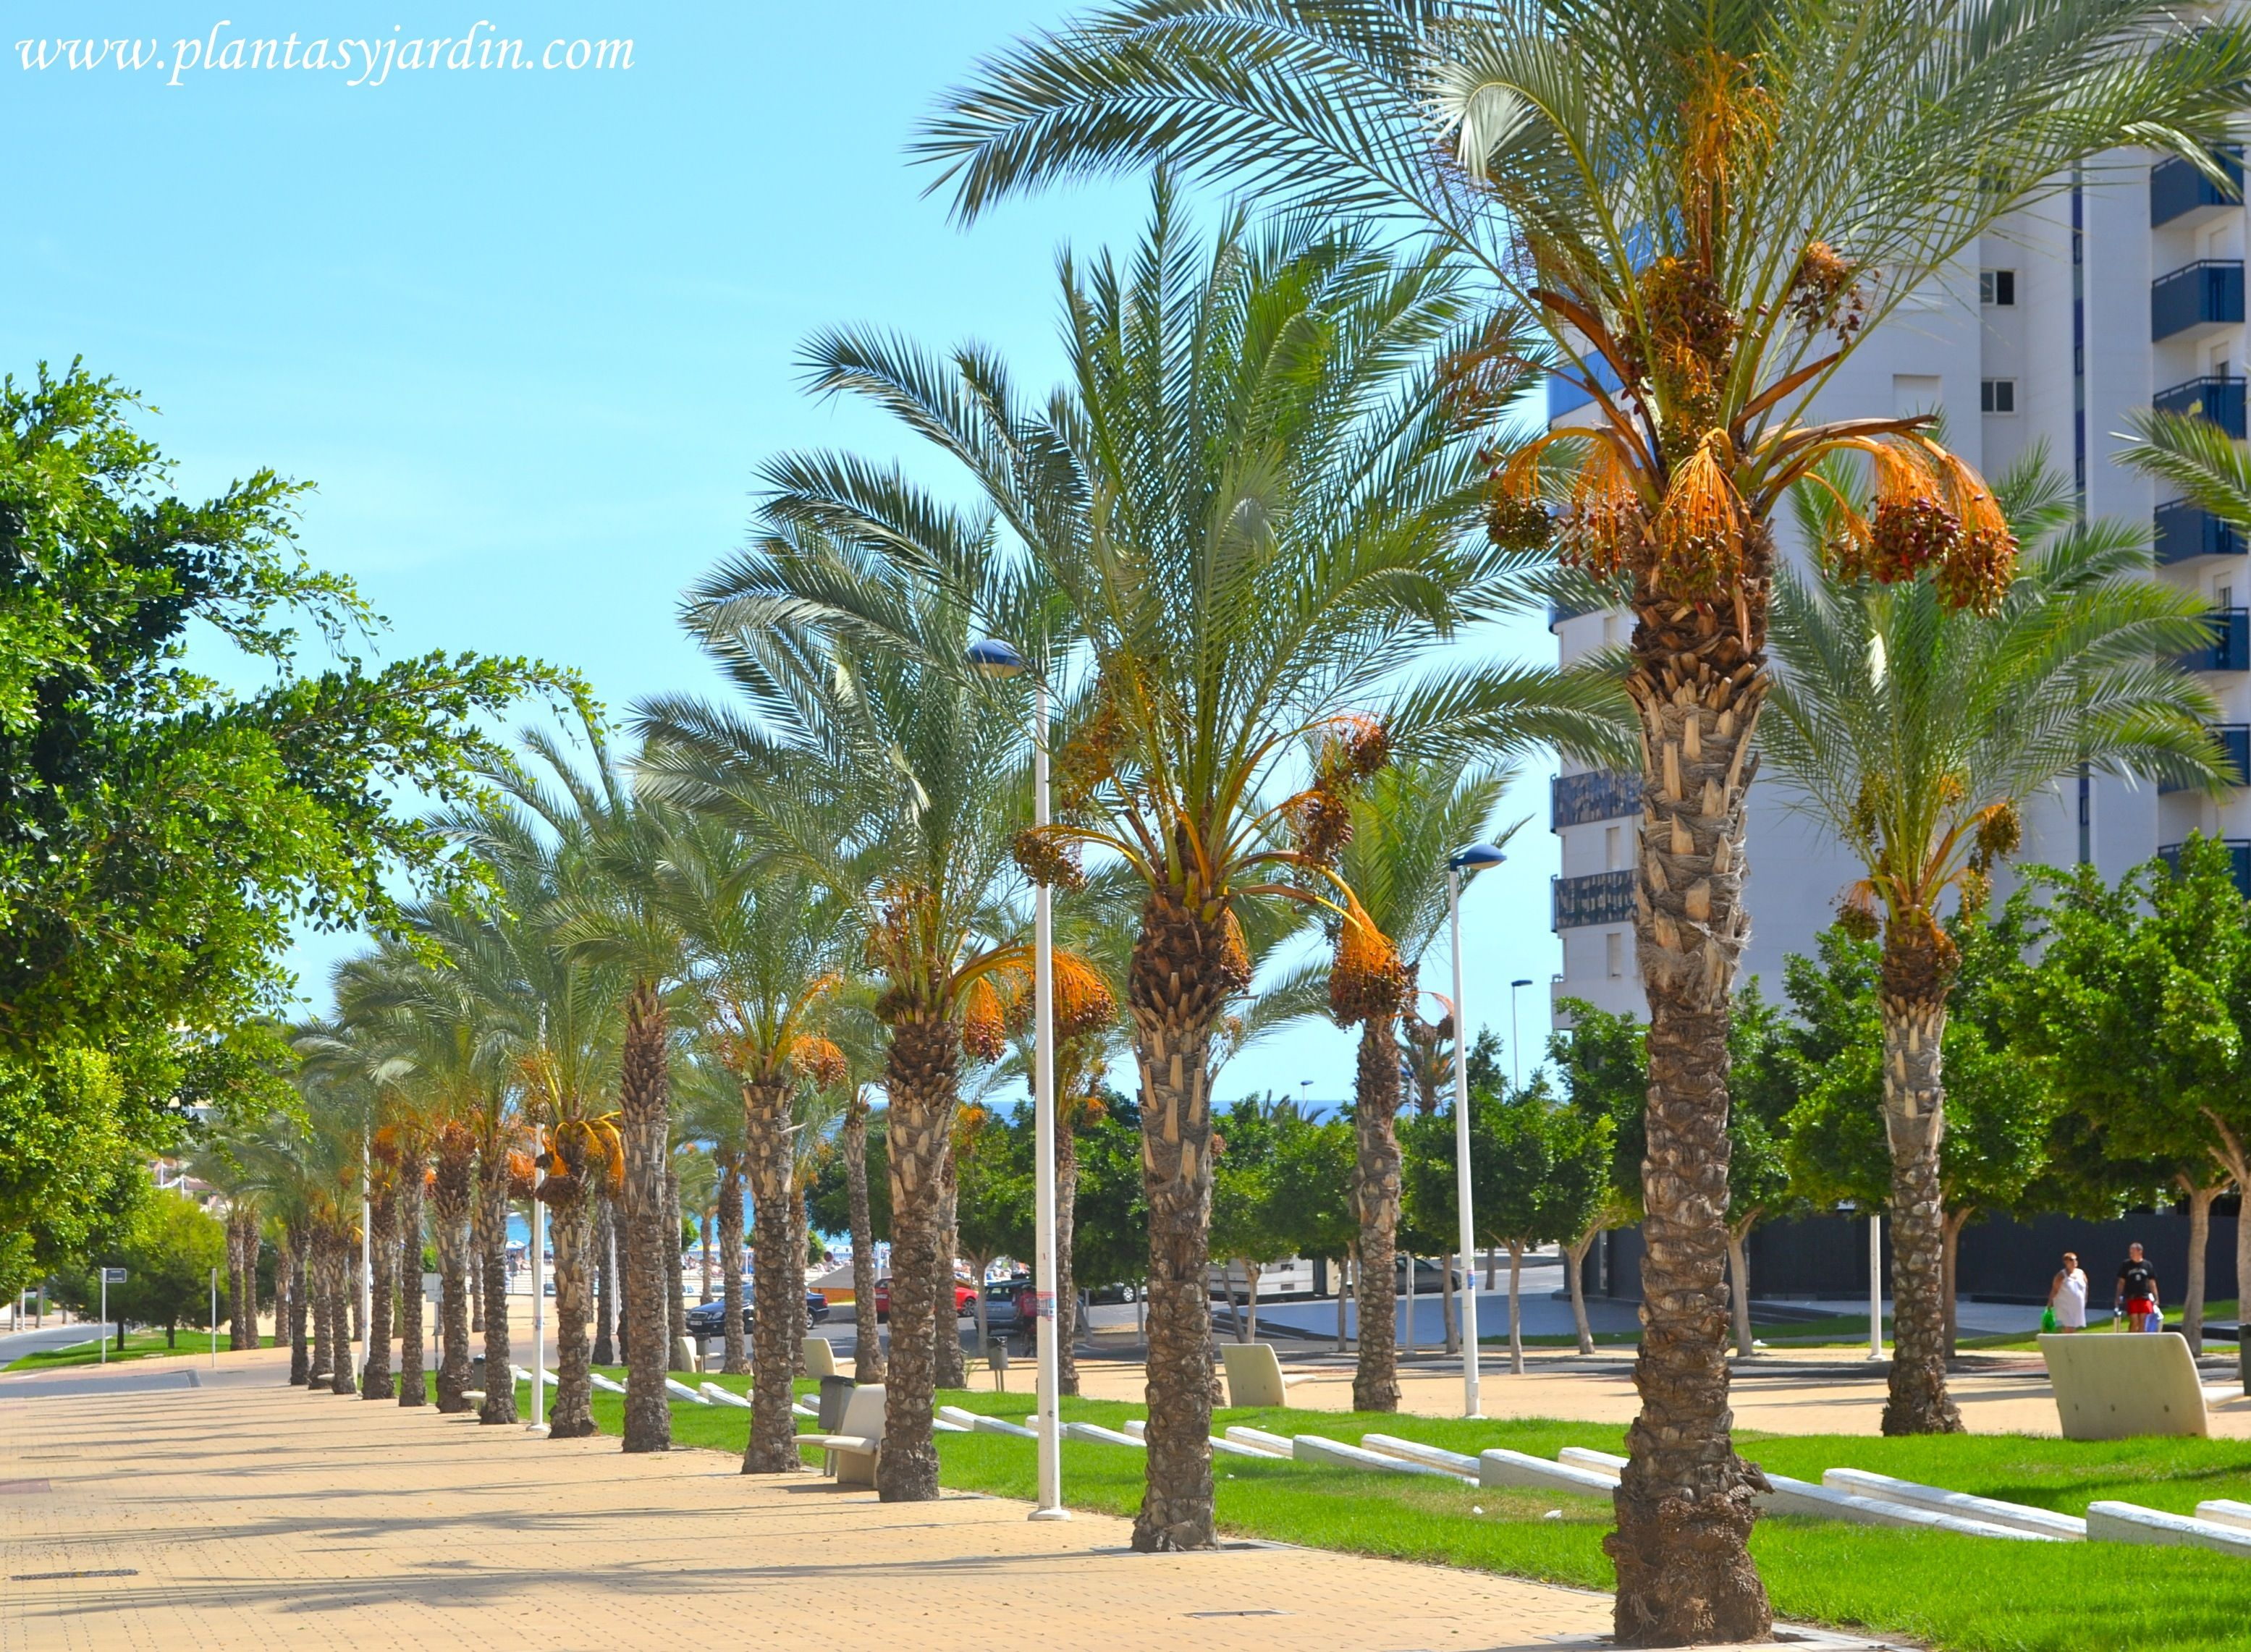 Palmera datilera en la cala de finestrat alicante spain for Palmeras pequenas para jardin